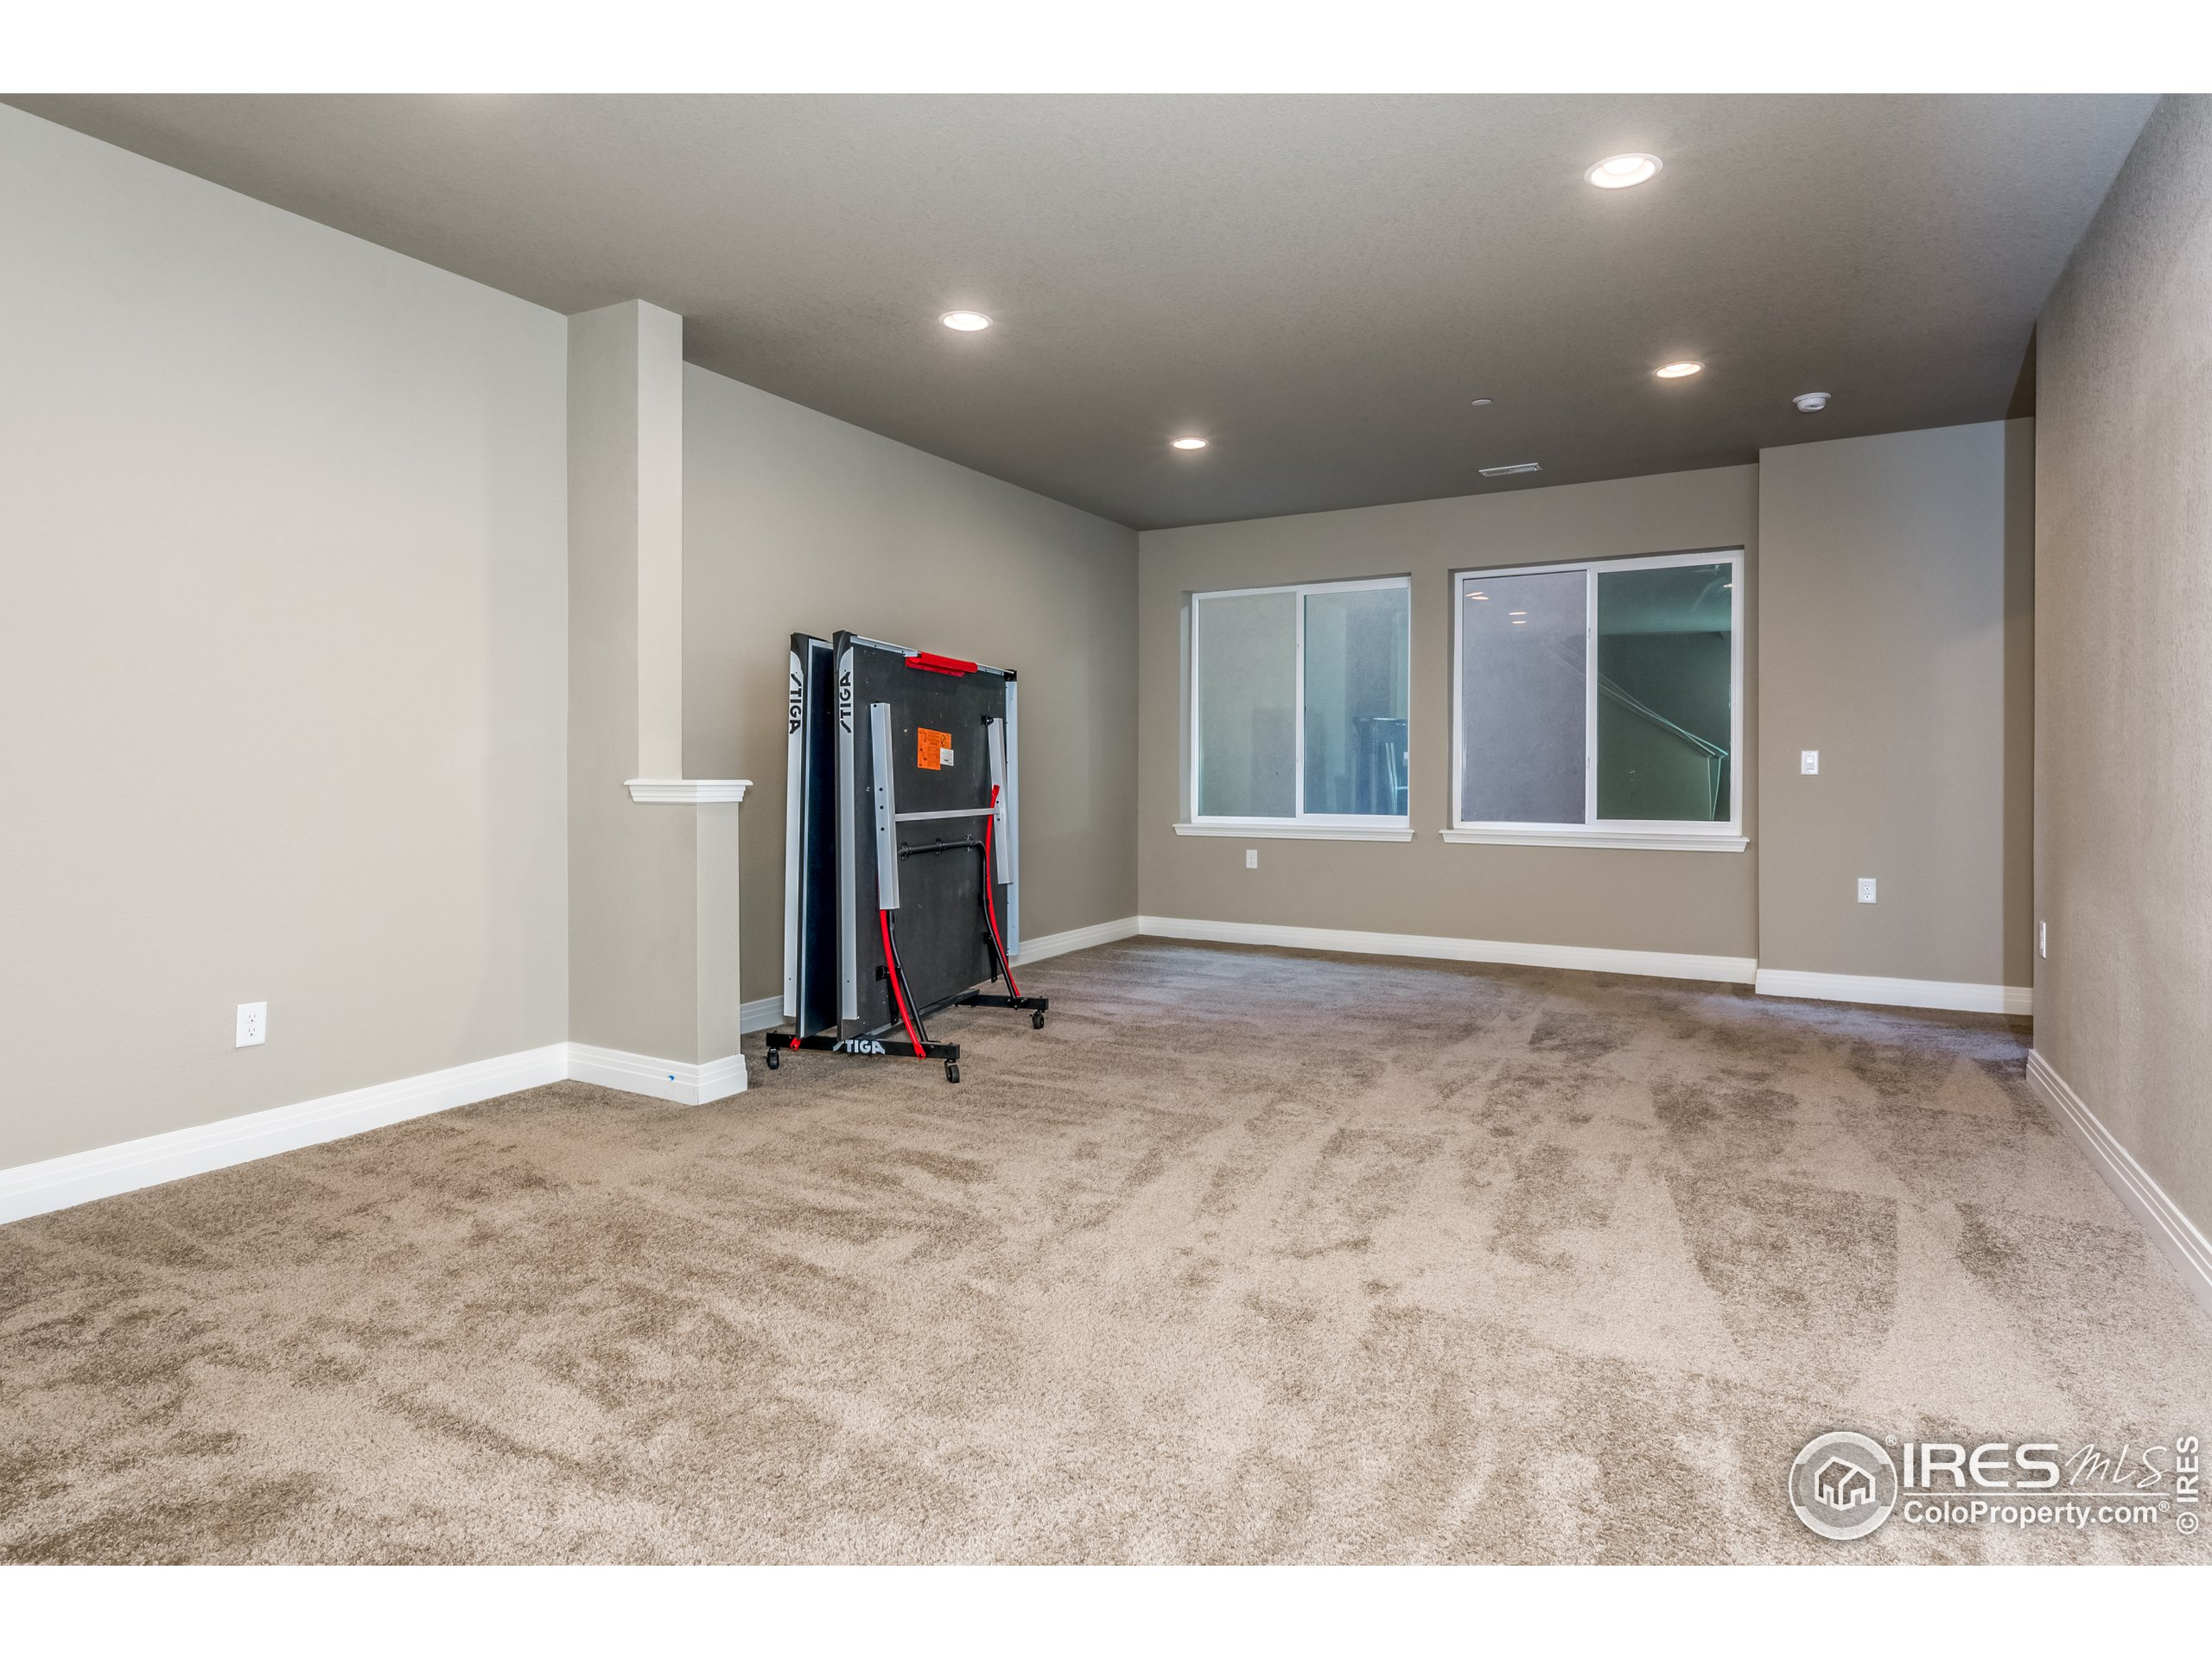 Rec room, game room, whatever you need!